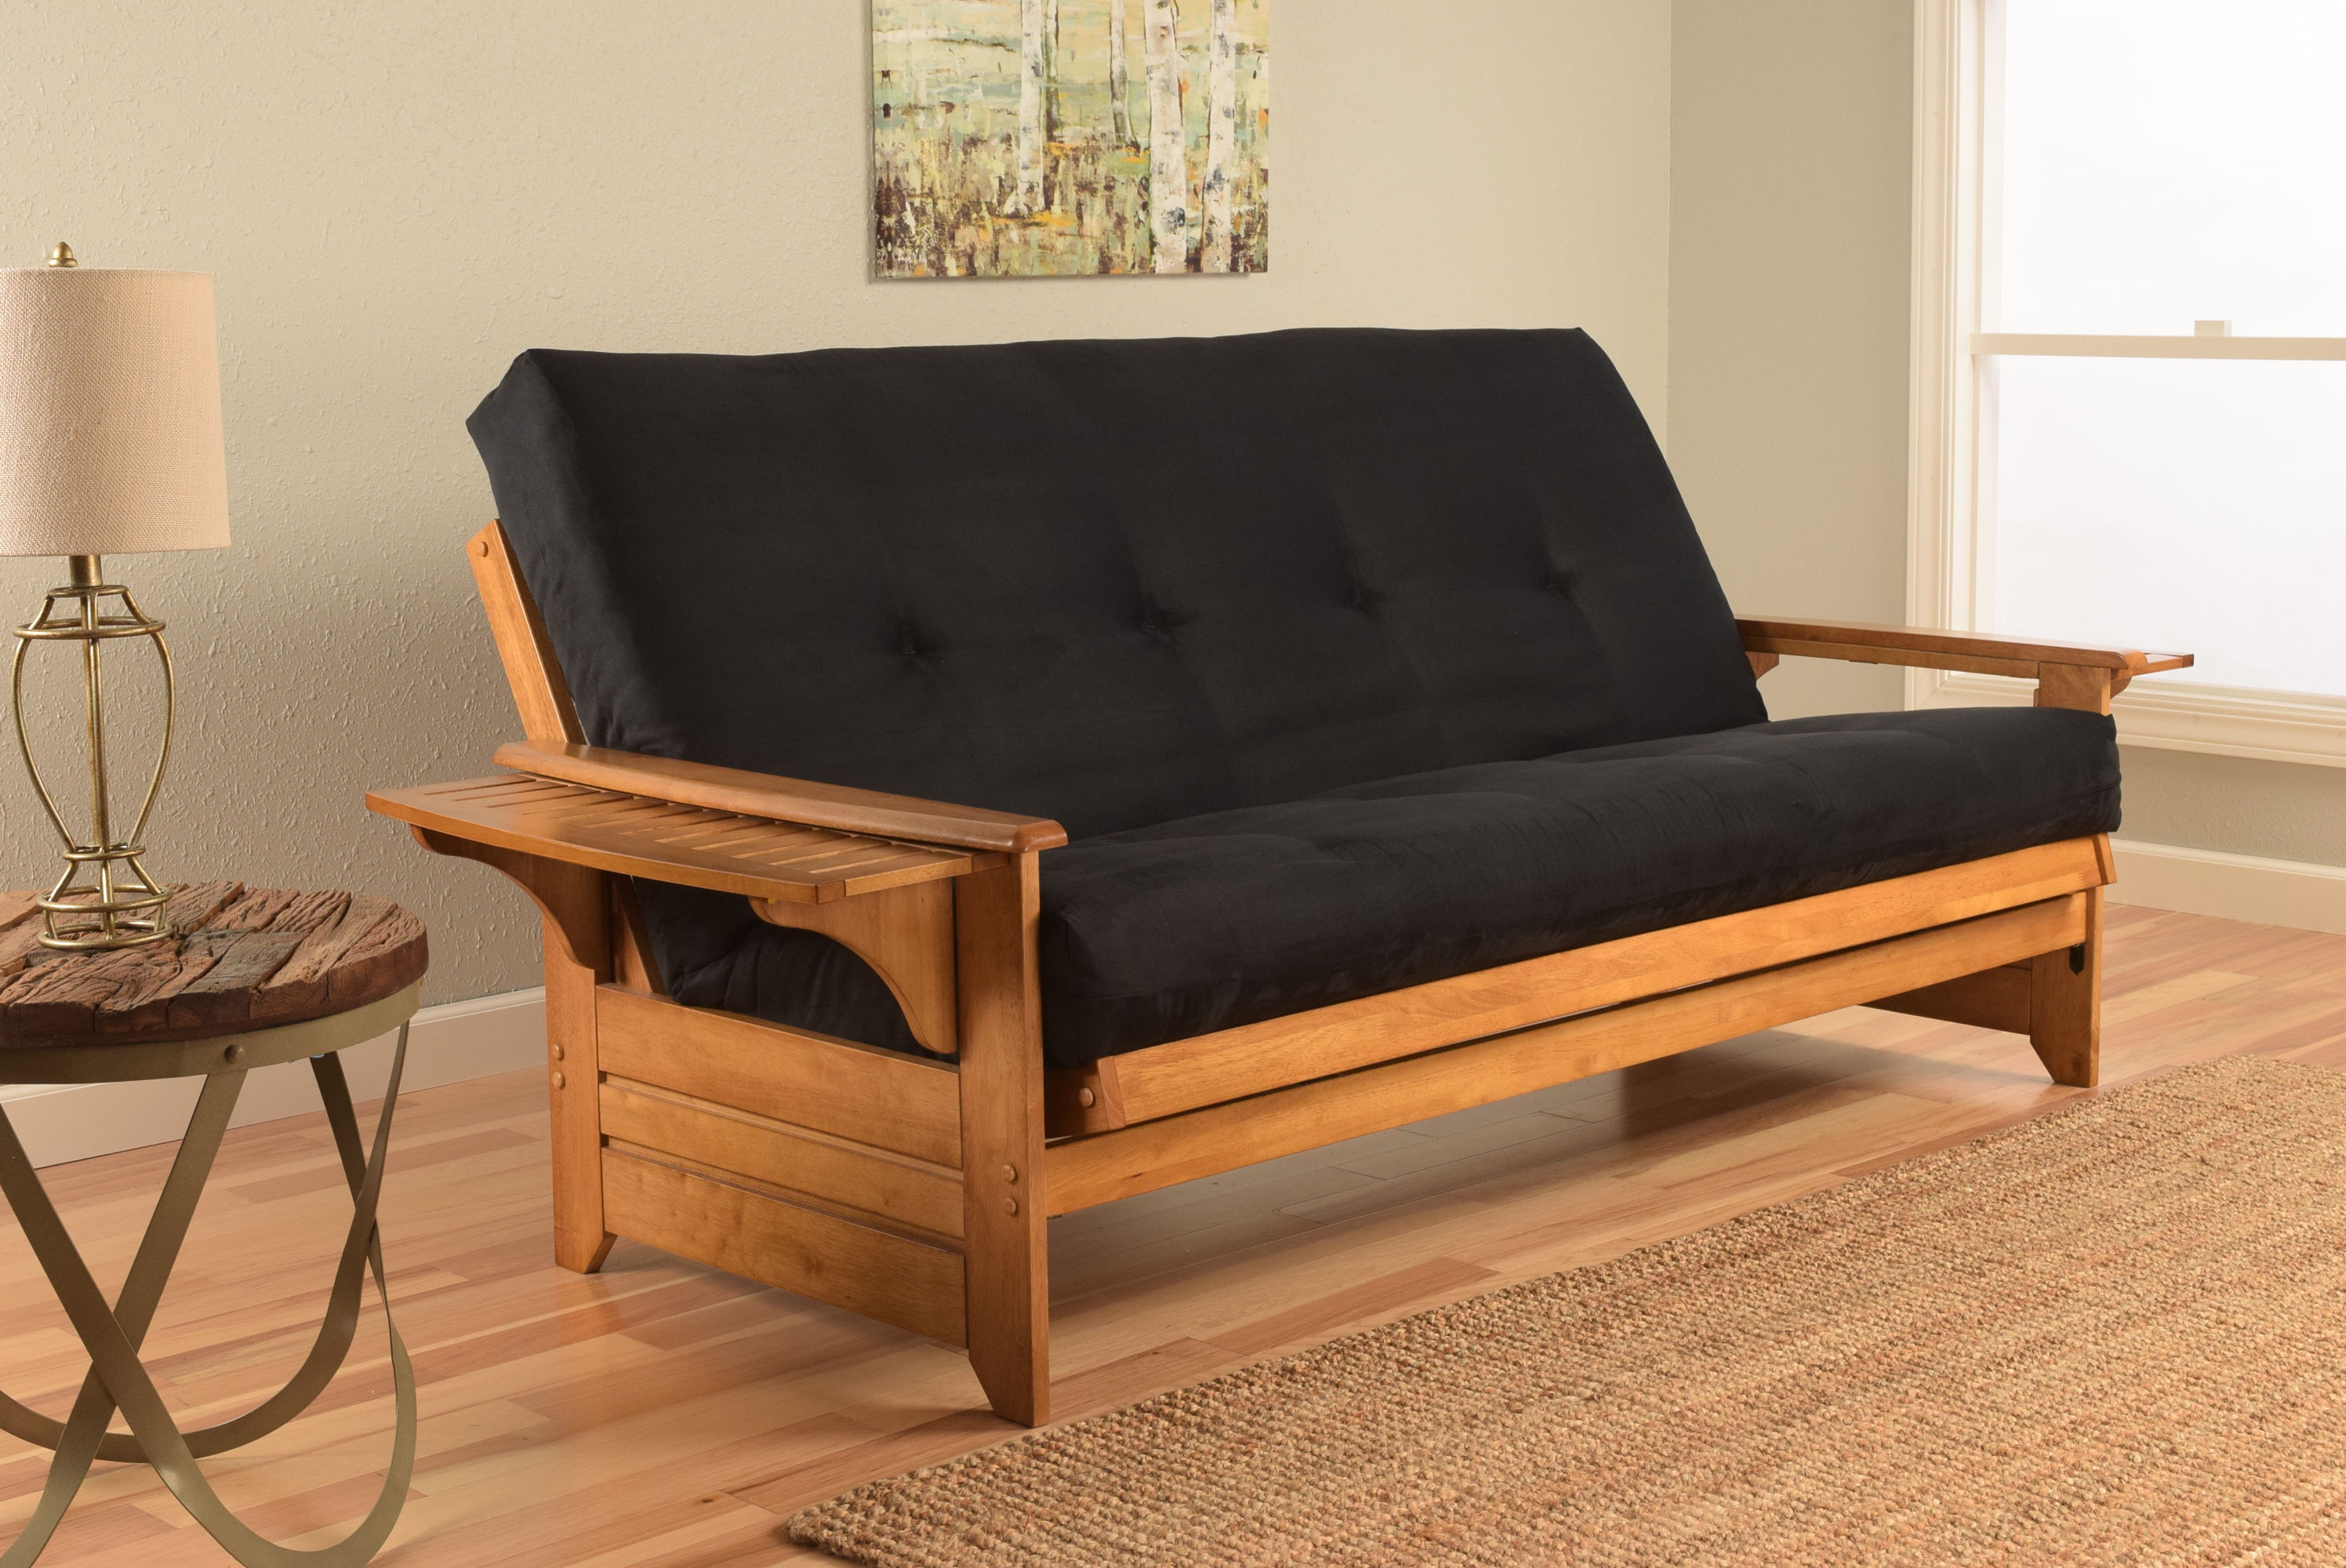 Kodiak Furniture Phoenix Ernut